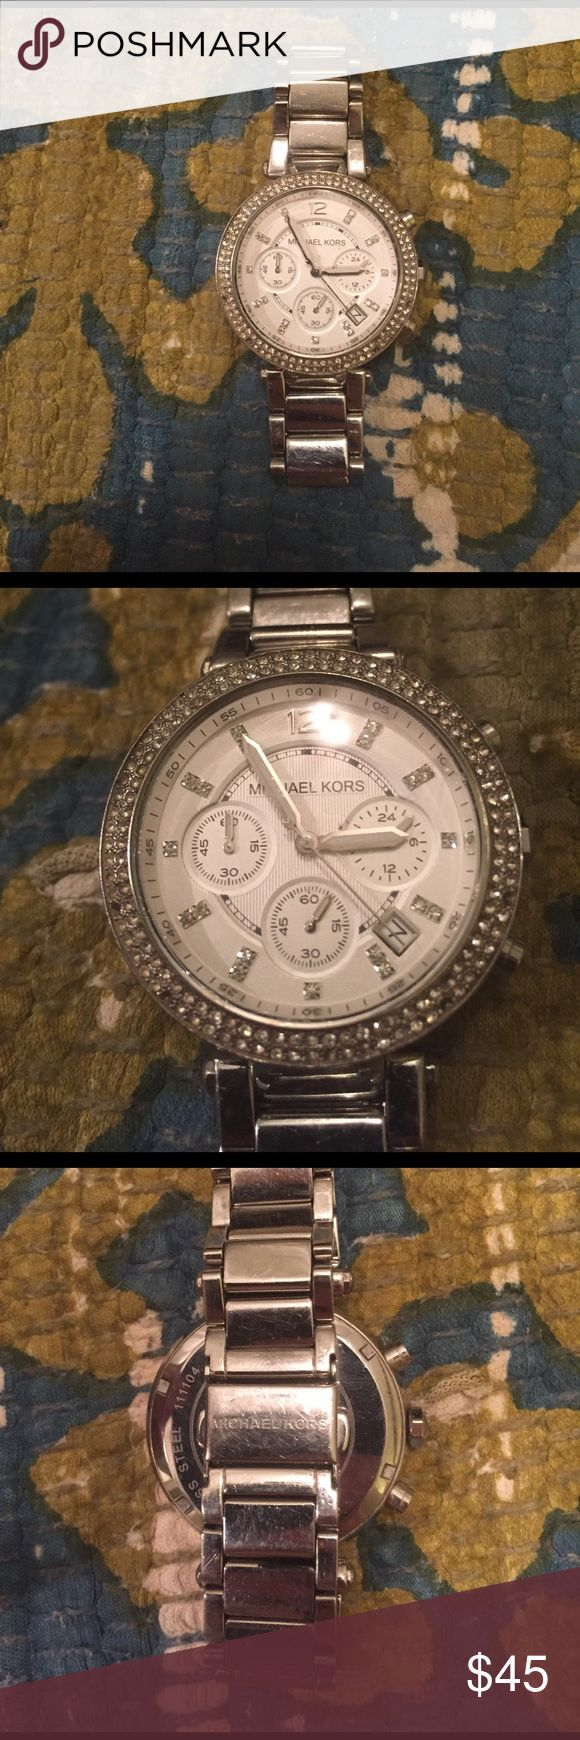 Michael Kors Silver Watch Michael Kors Silver Watch. 6 of the little diamonds are missing but are not hugely noticeable or can be fixed. The battery is dead so would need a new battery. Price reflects all of this. Michael Kors Accessories Watches